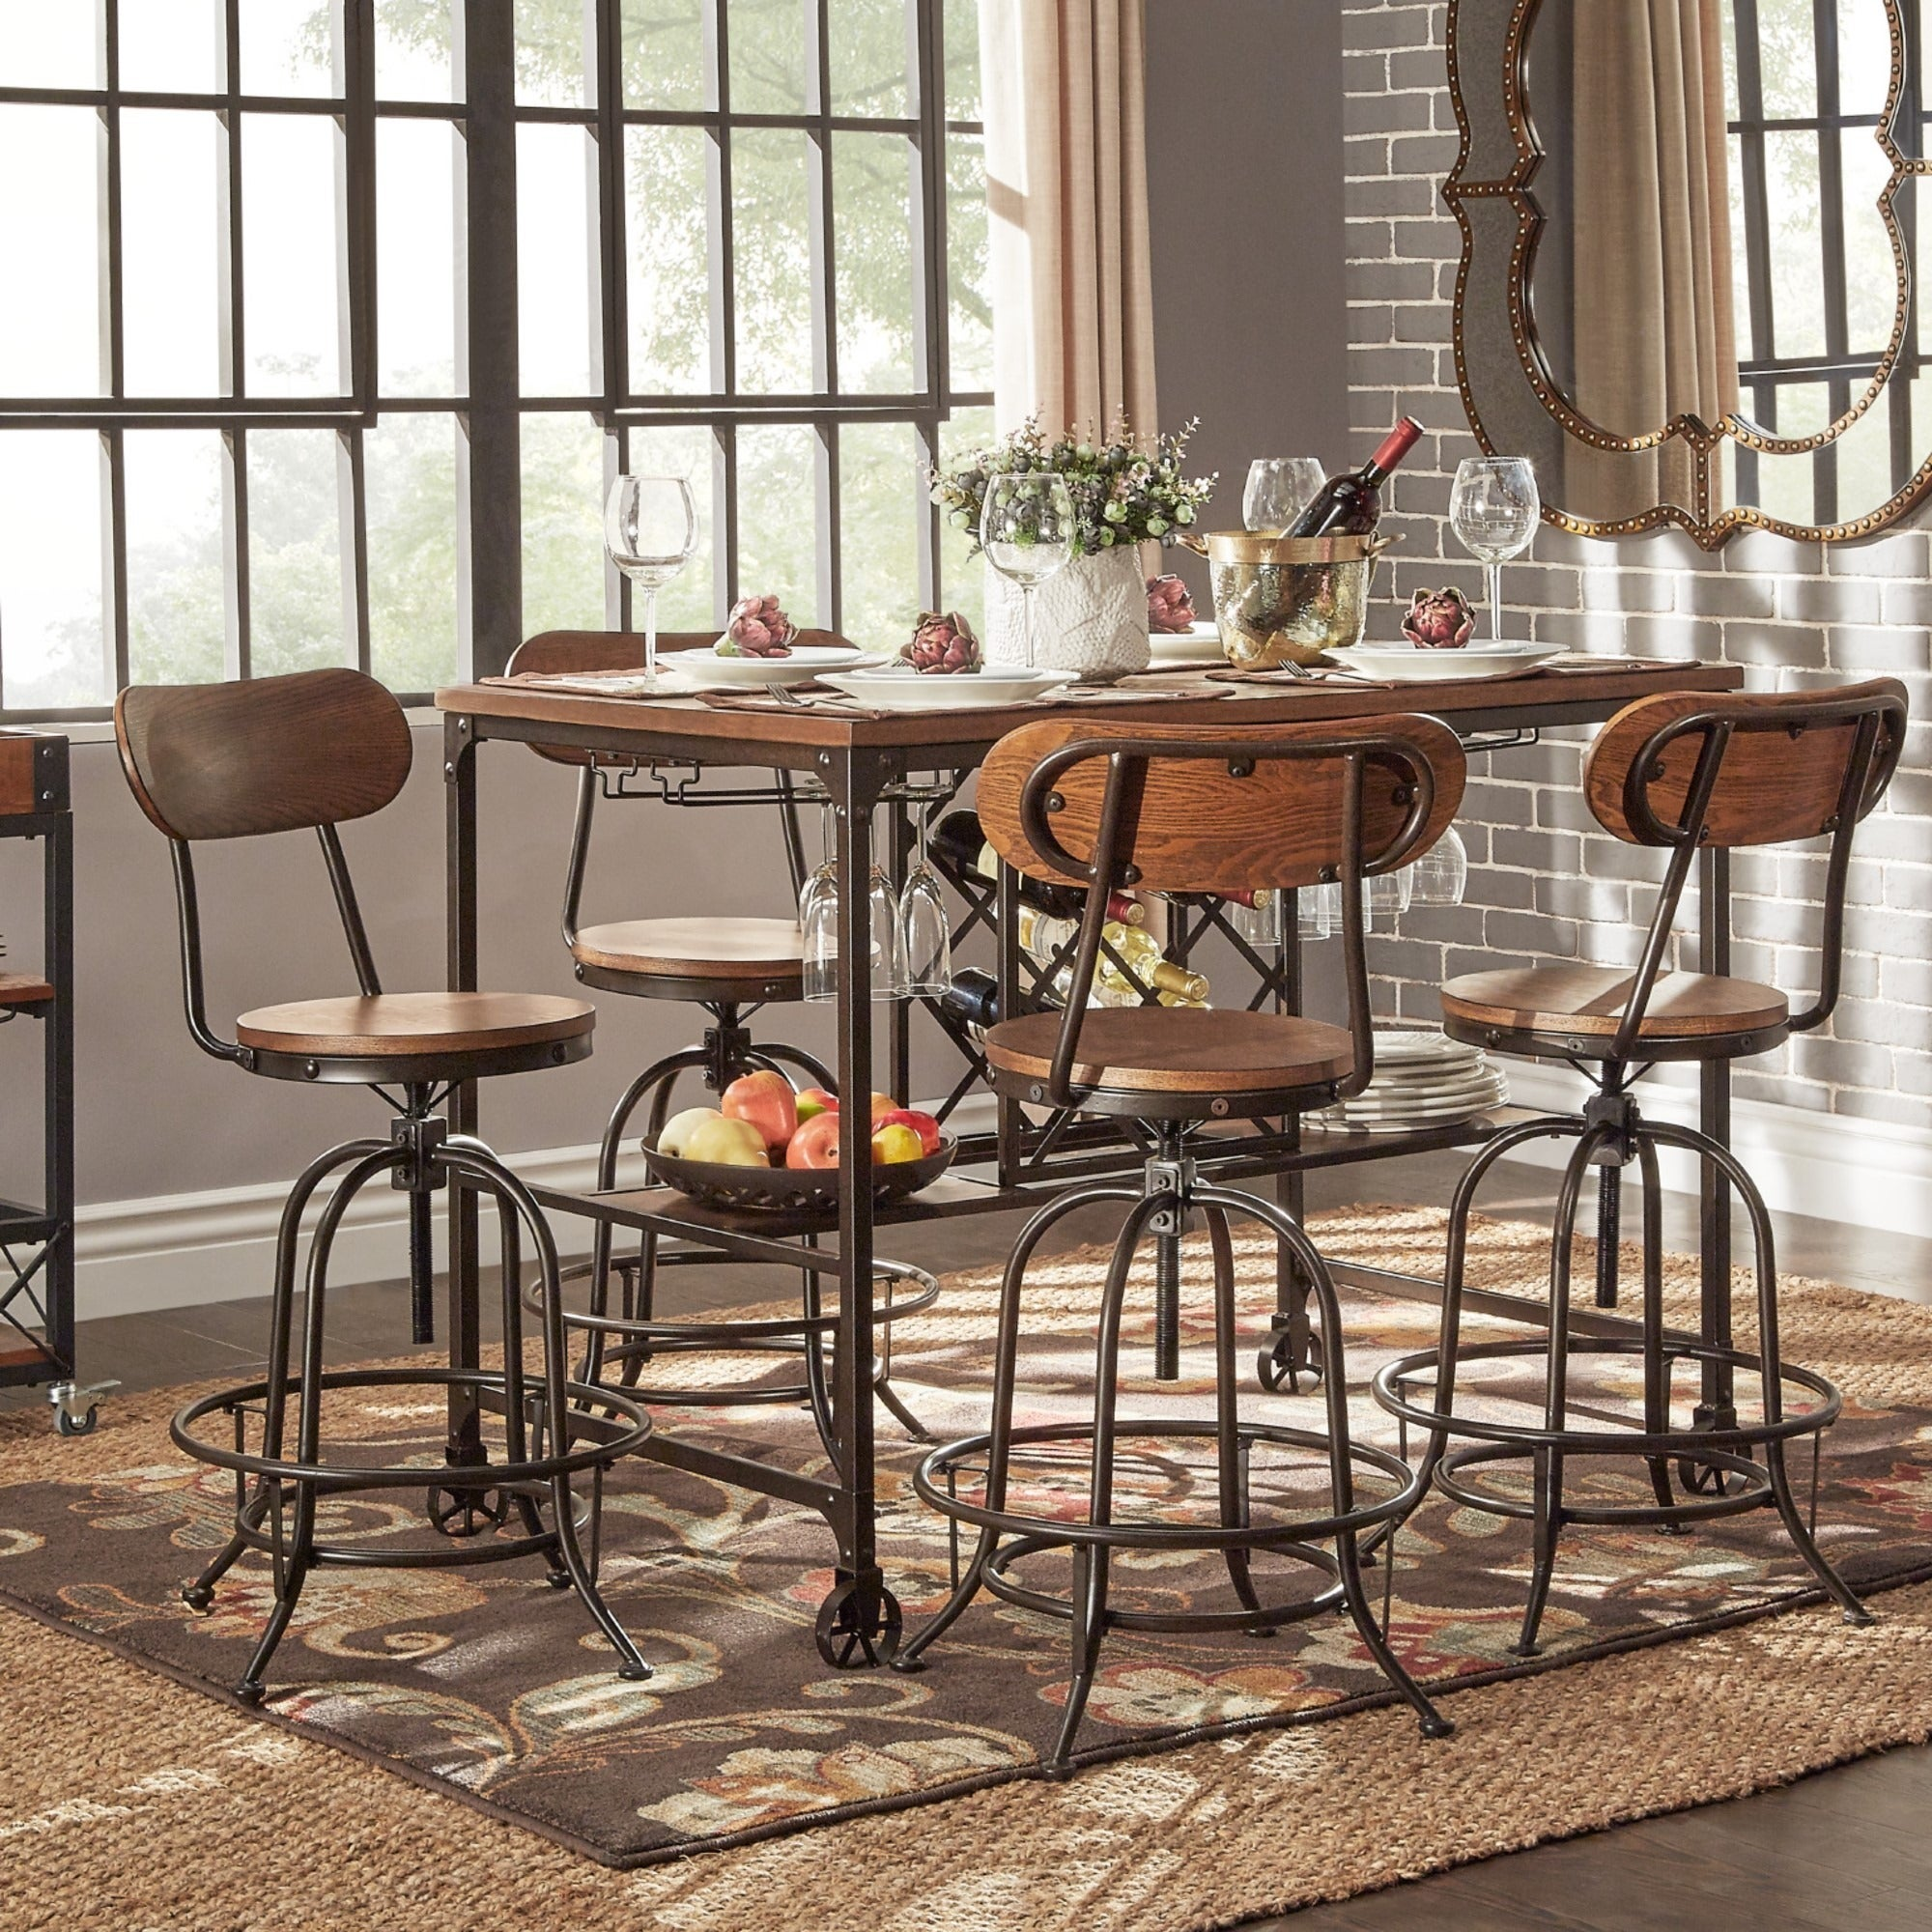 Shop Berwick Industrial Style Counter Height Pub Dining Set With Wine Rack  By INSPIRE Q Classic   On Sale   Free Shipping Today   Overstock.com    10996558